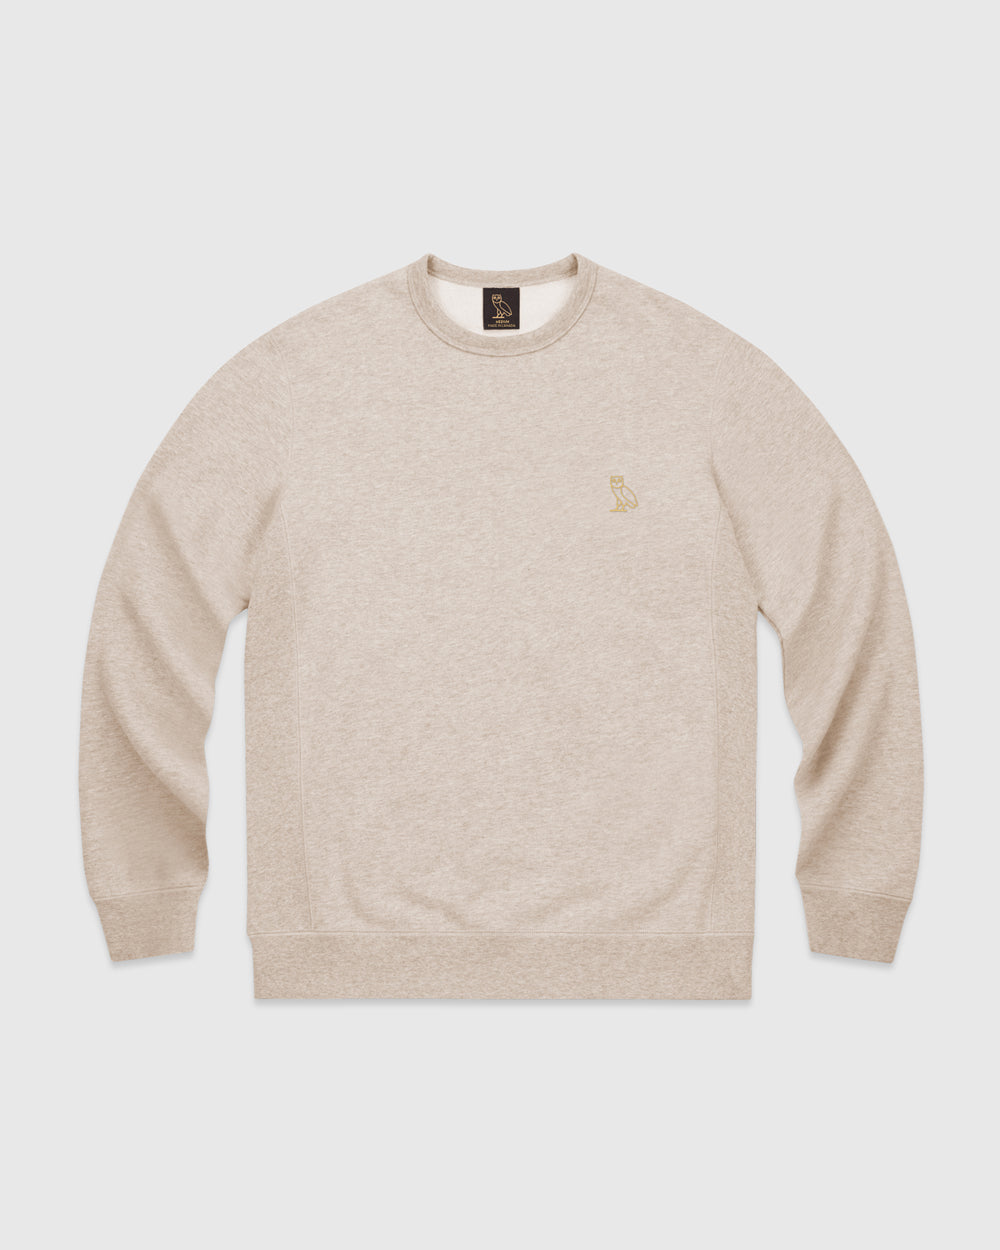 OVO FRENCH TERRY CREW - HEATHER OATMEAL